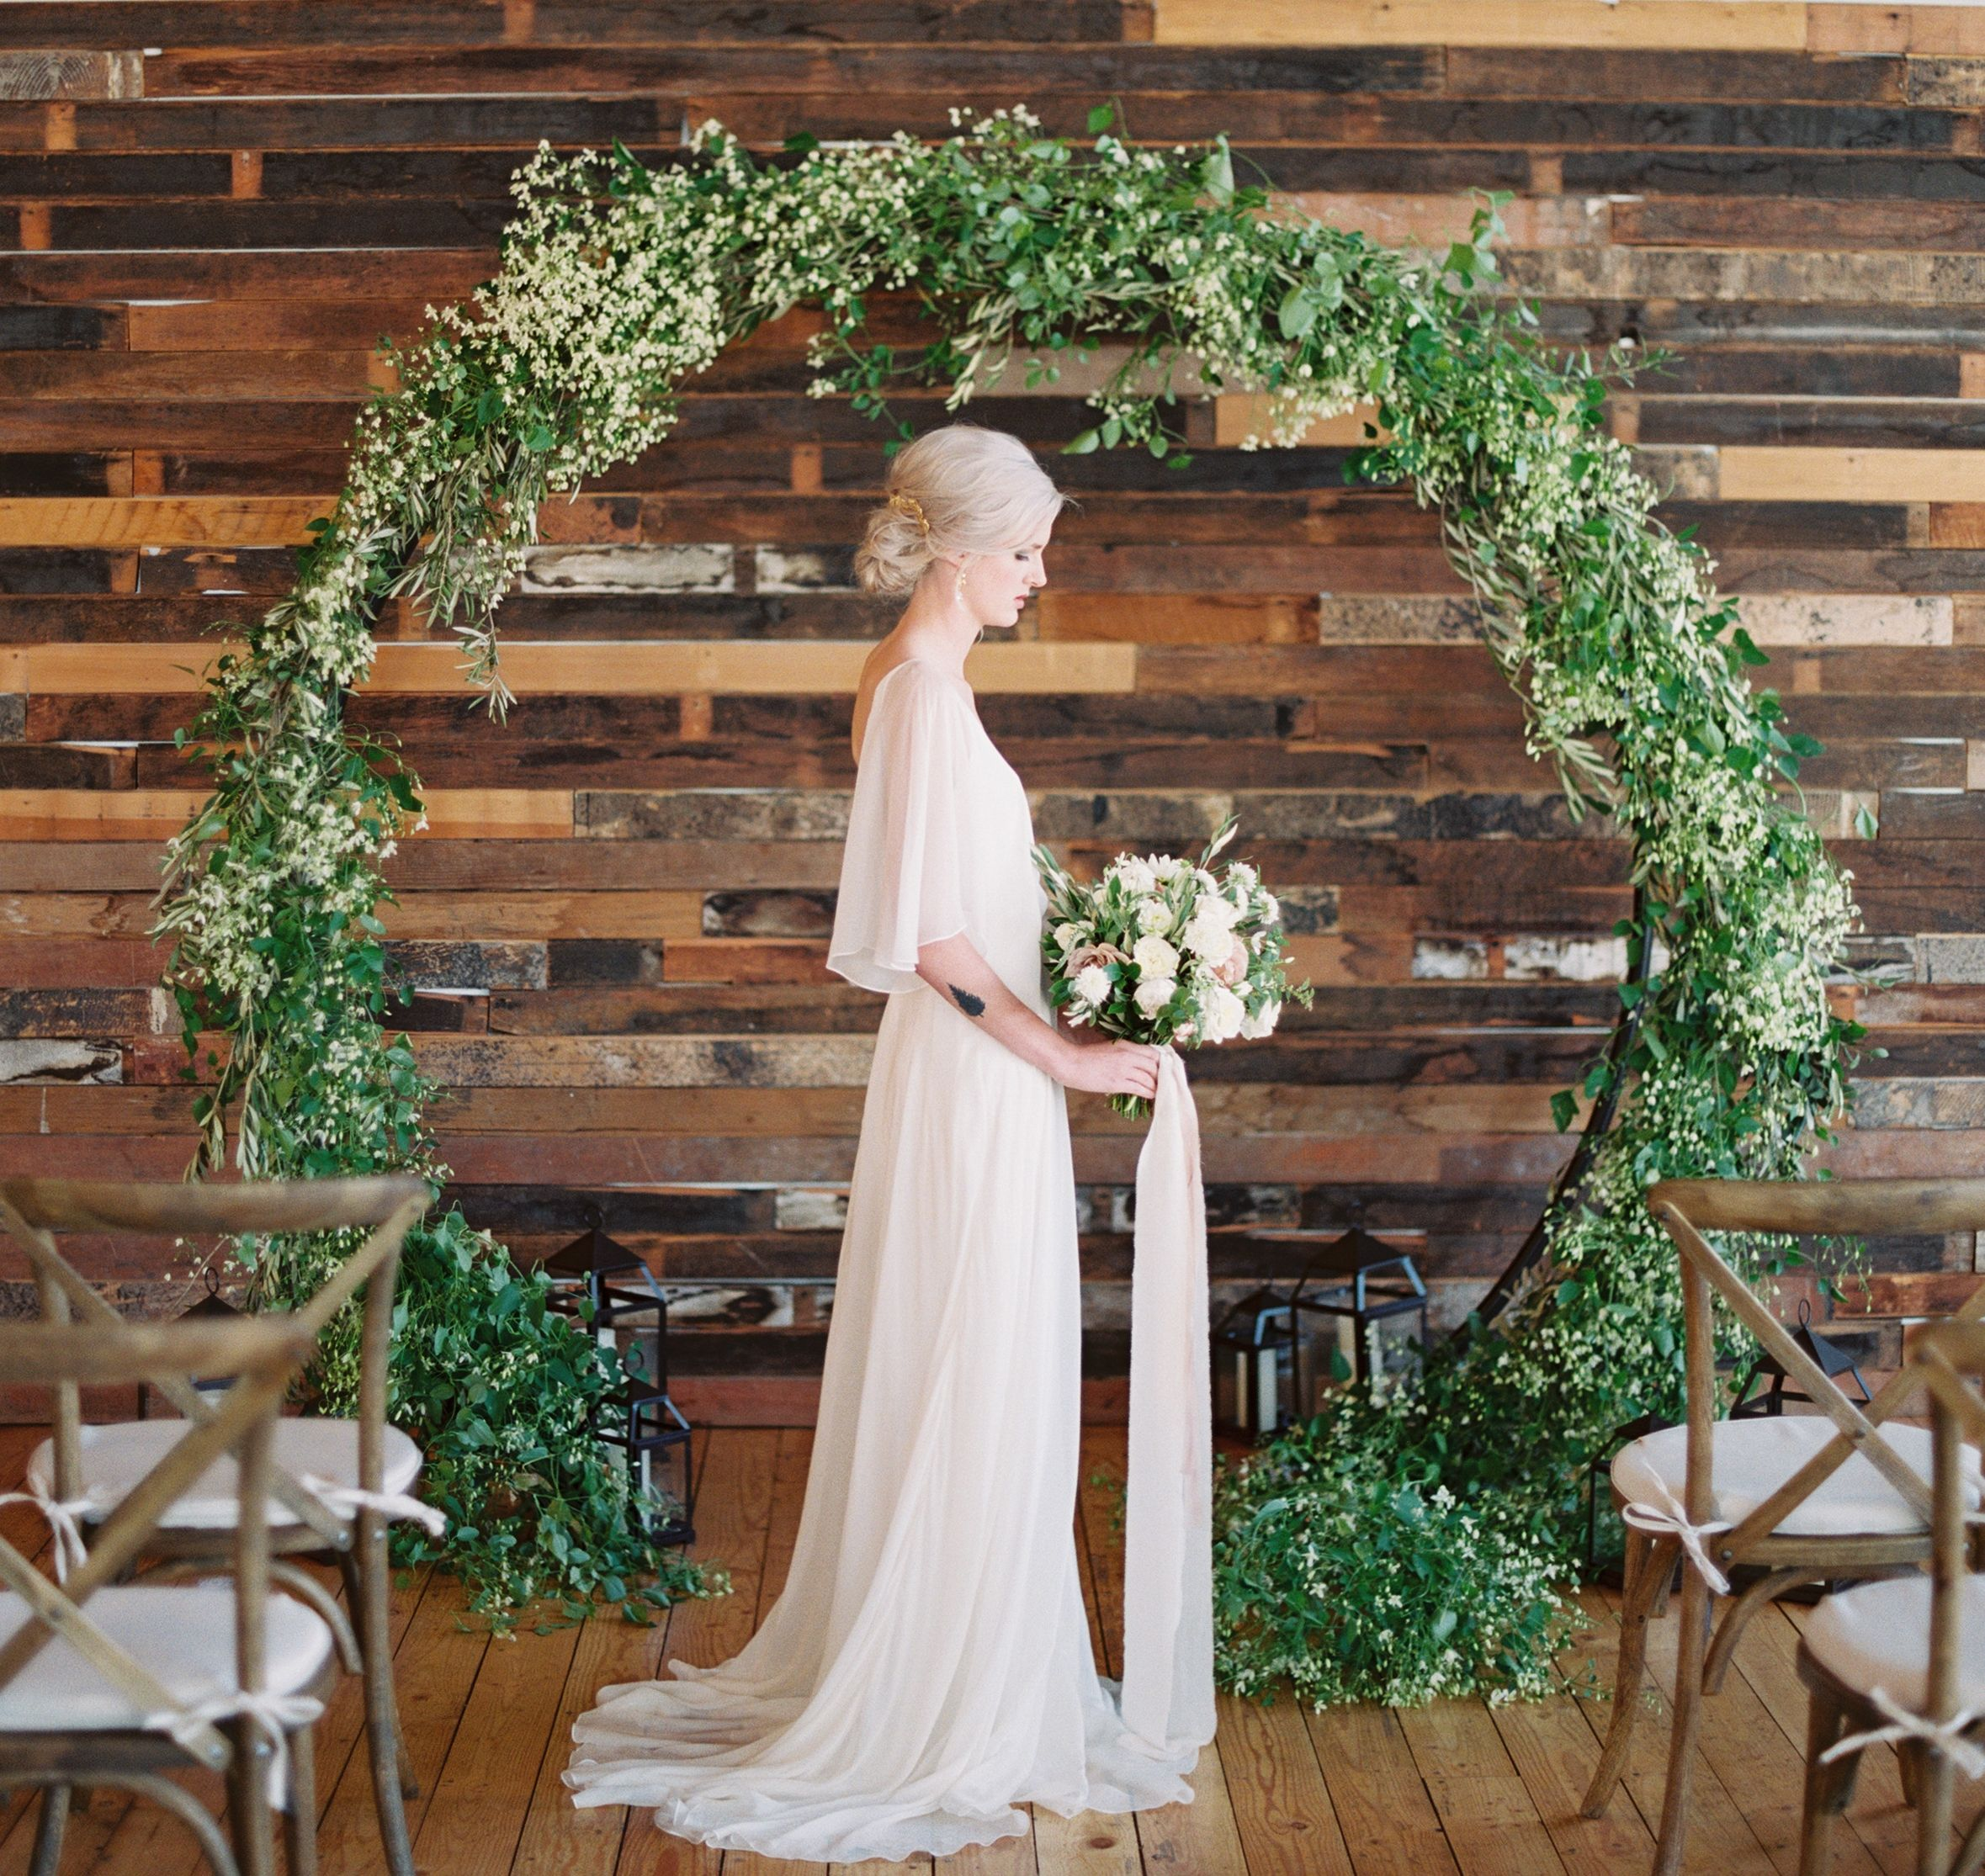 Wedding Arch Decorations Hire: Perfect Wedding Backdrop For The Ceremony